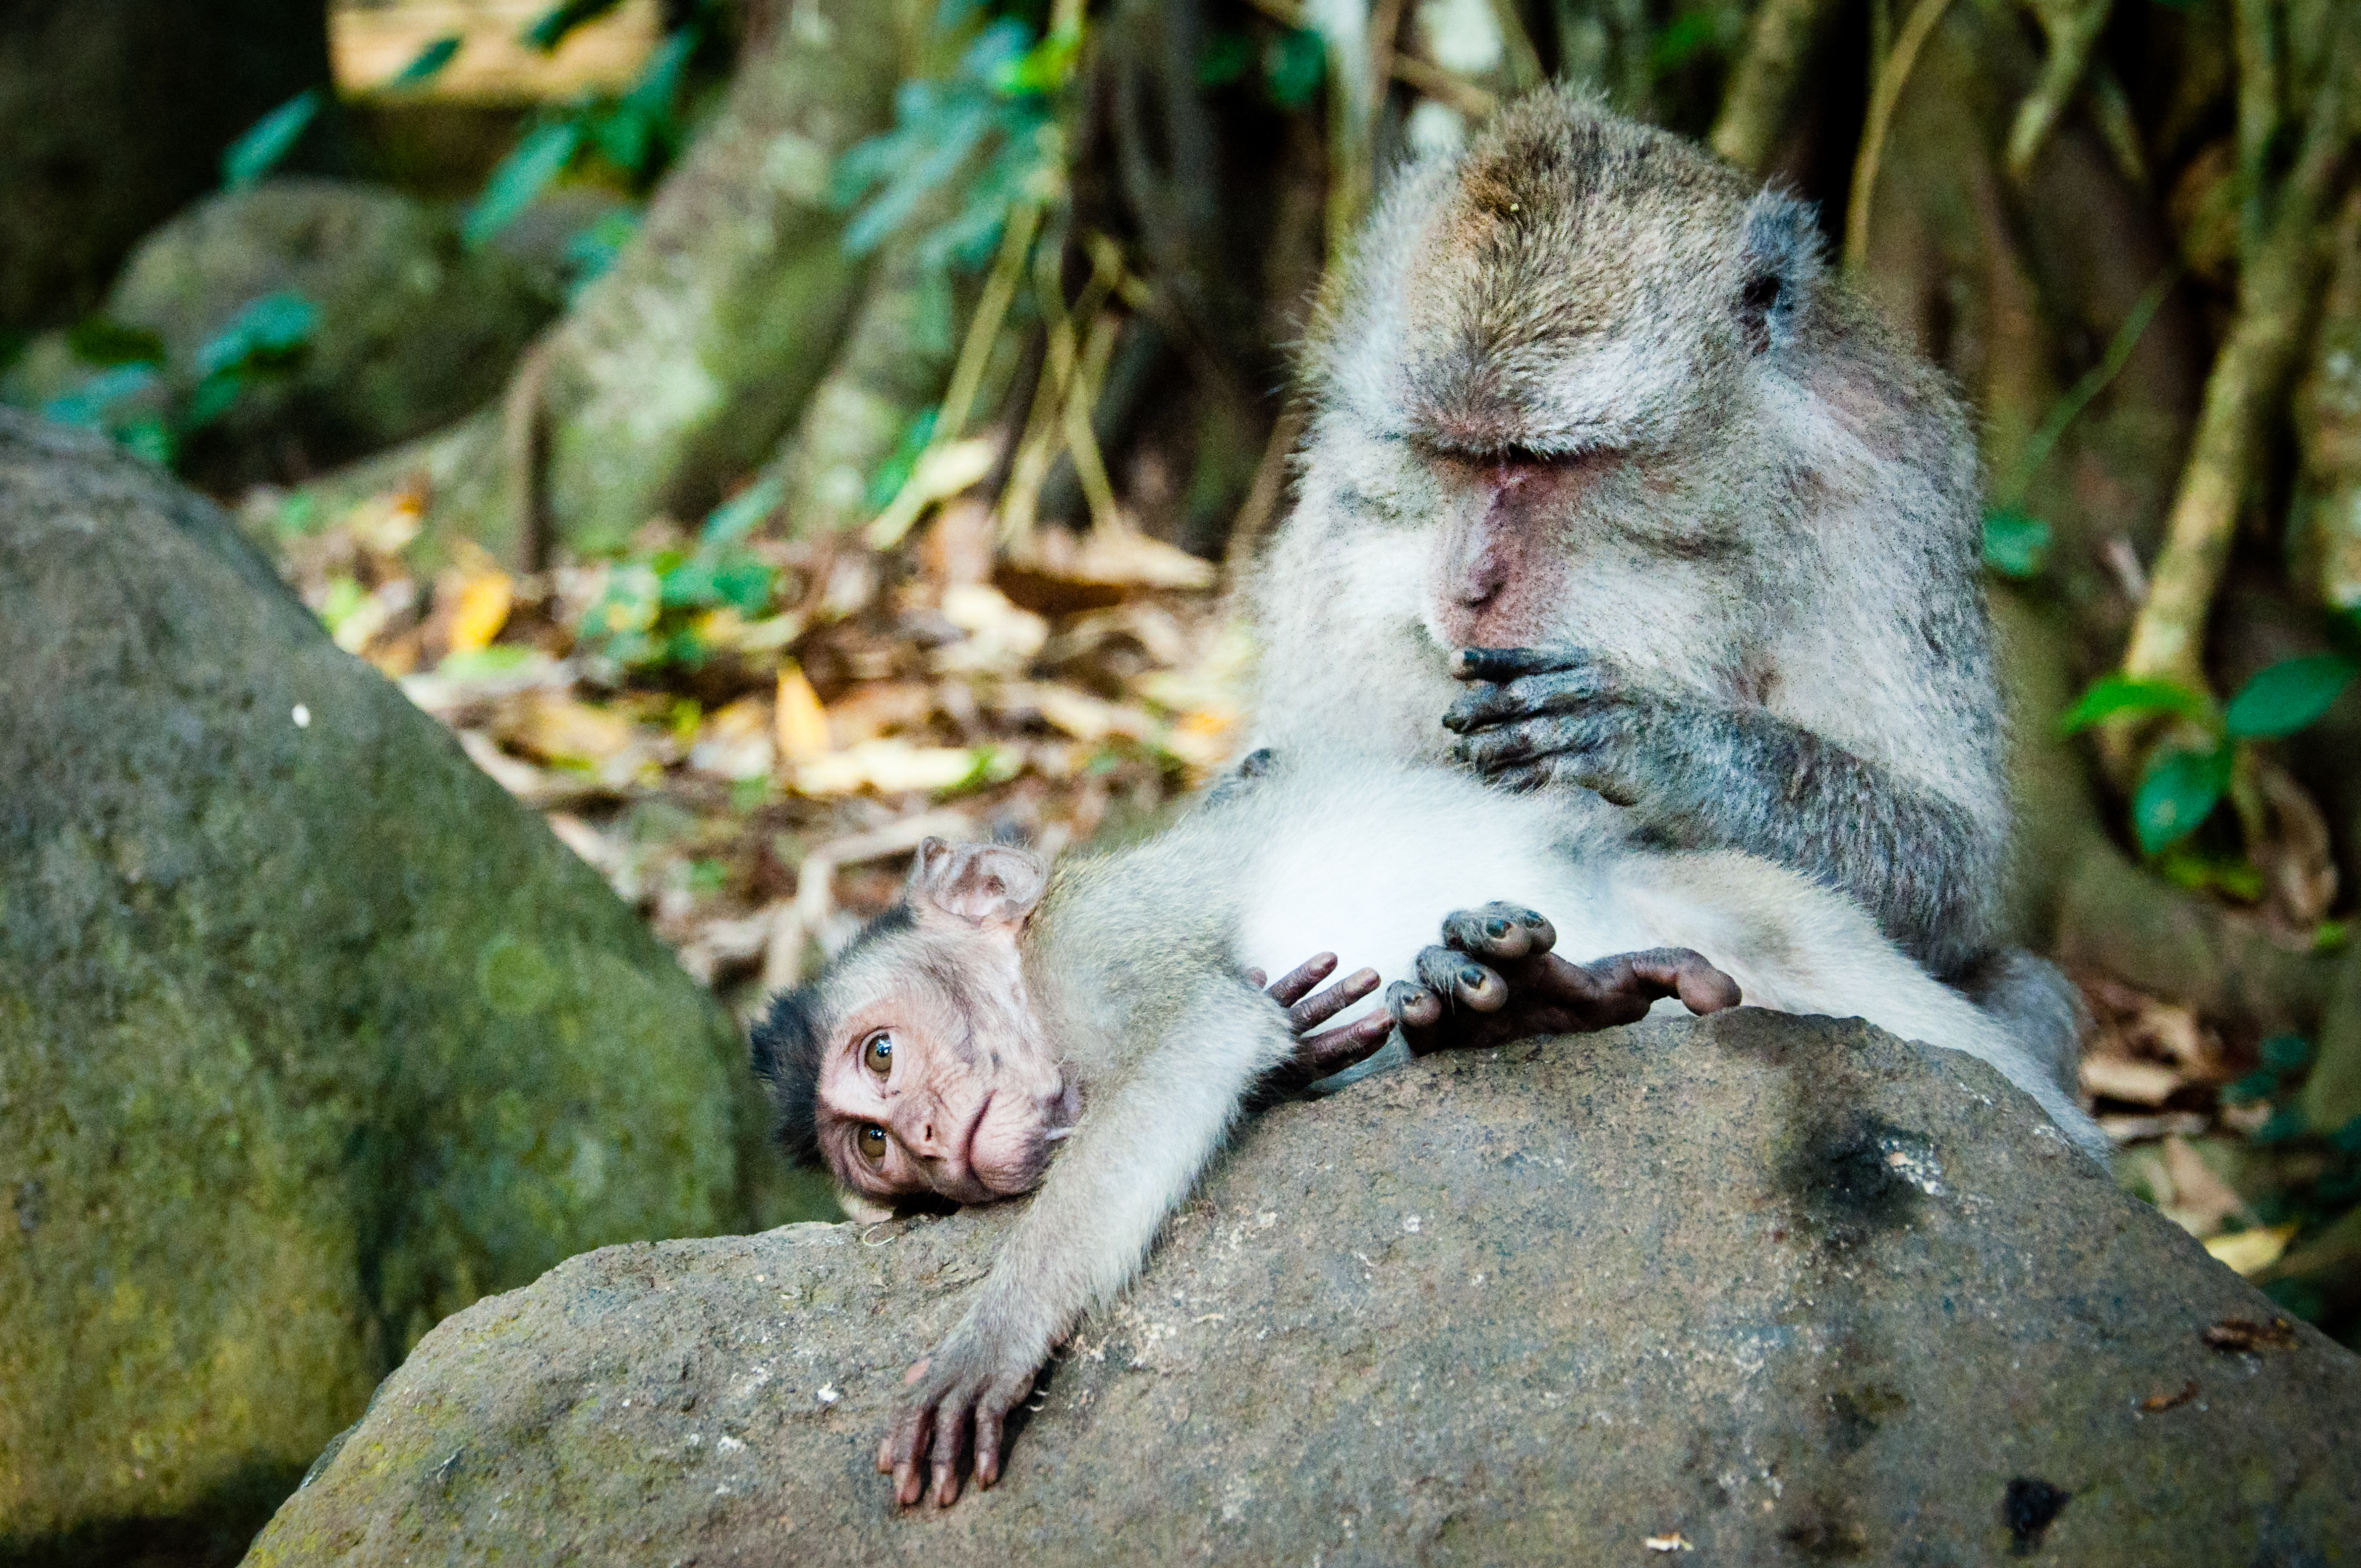 Monkey mother and baby photo